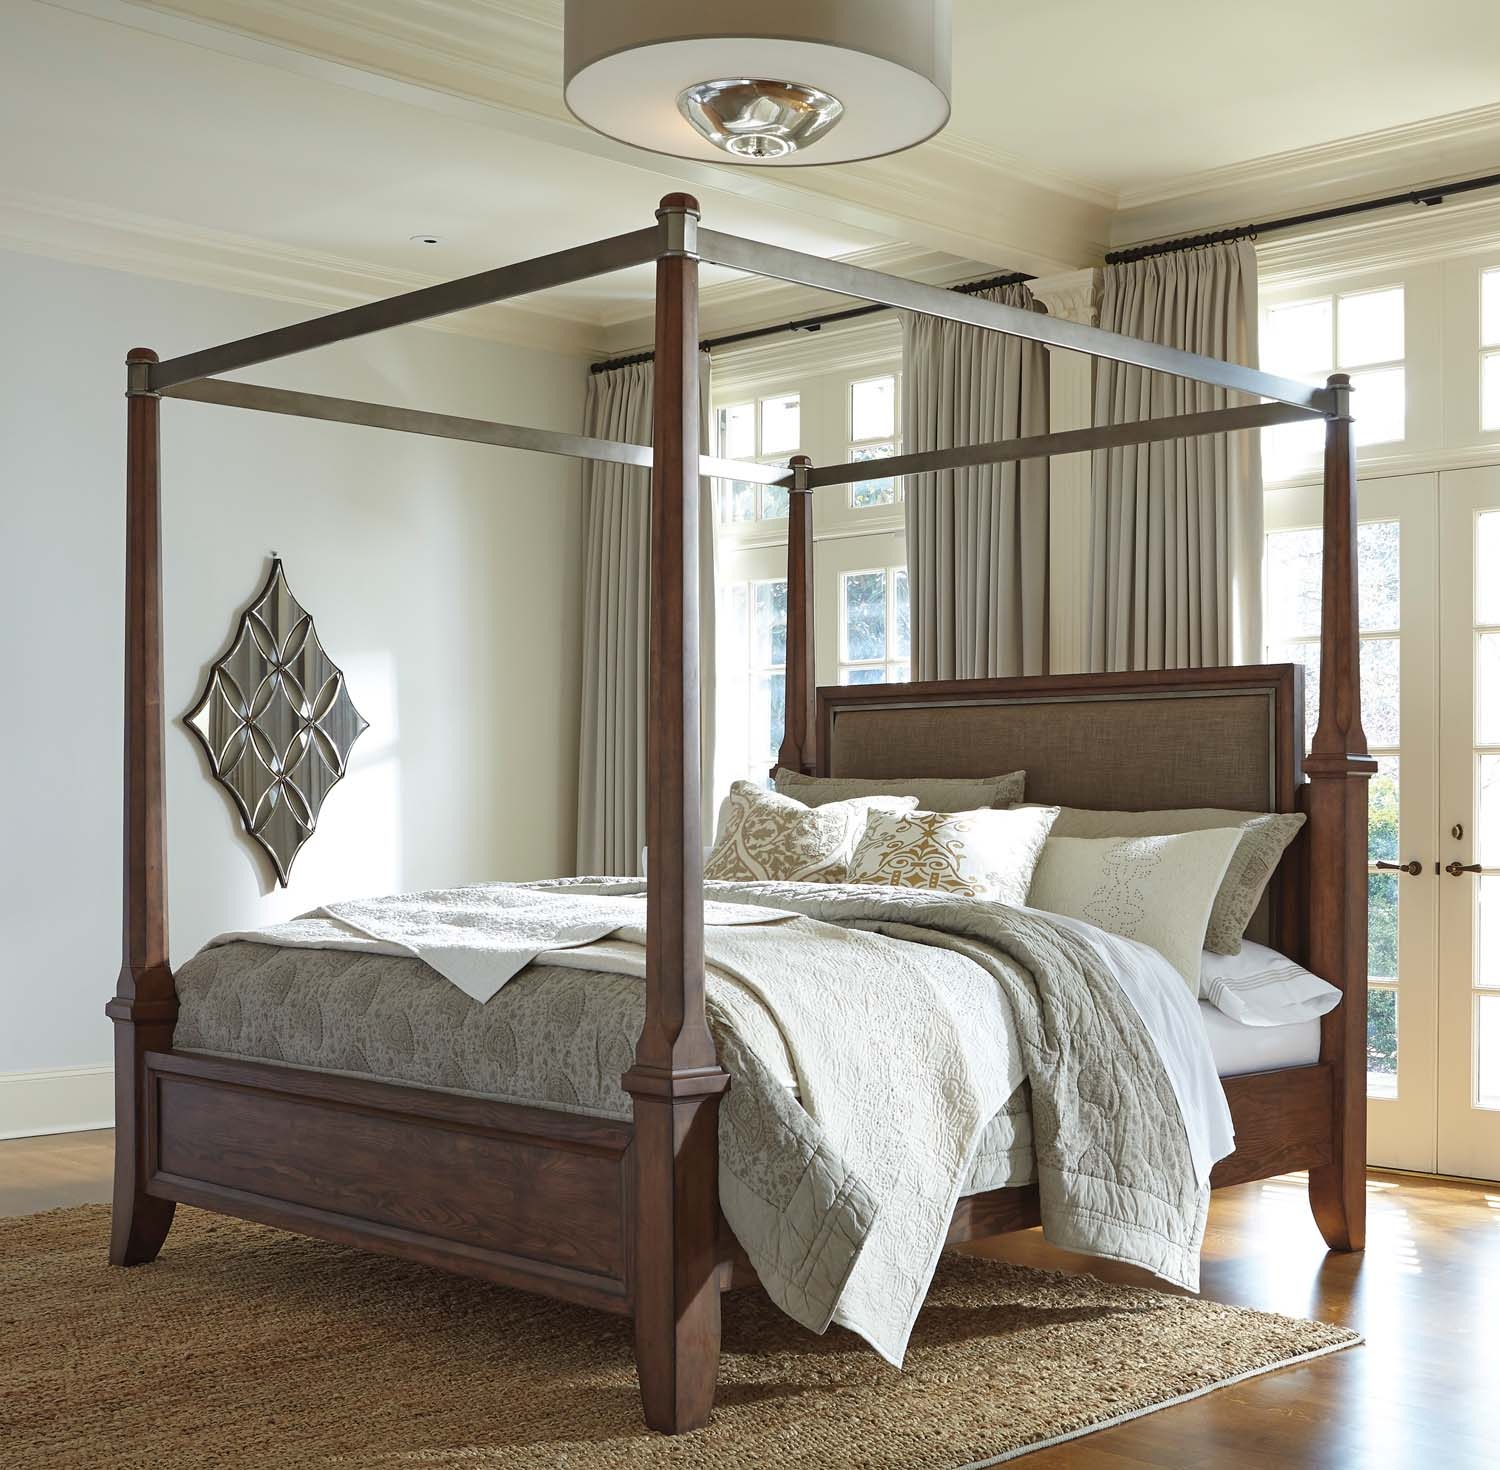 King/California King Canopy & B64662 in by Ashley Furniture in Tucson AZ - King/California King ...